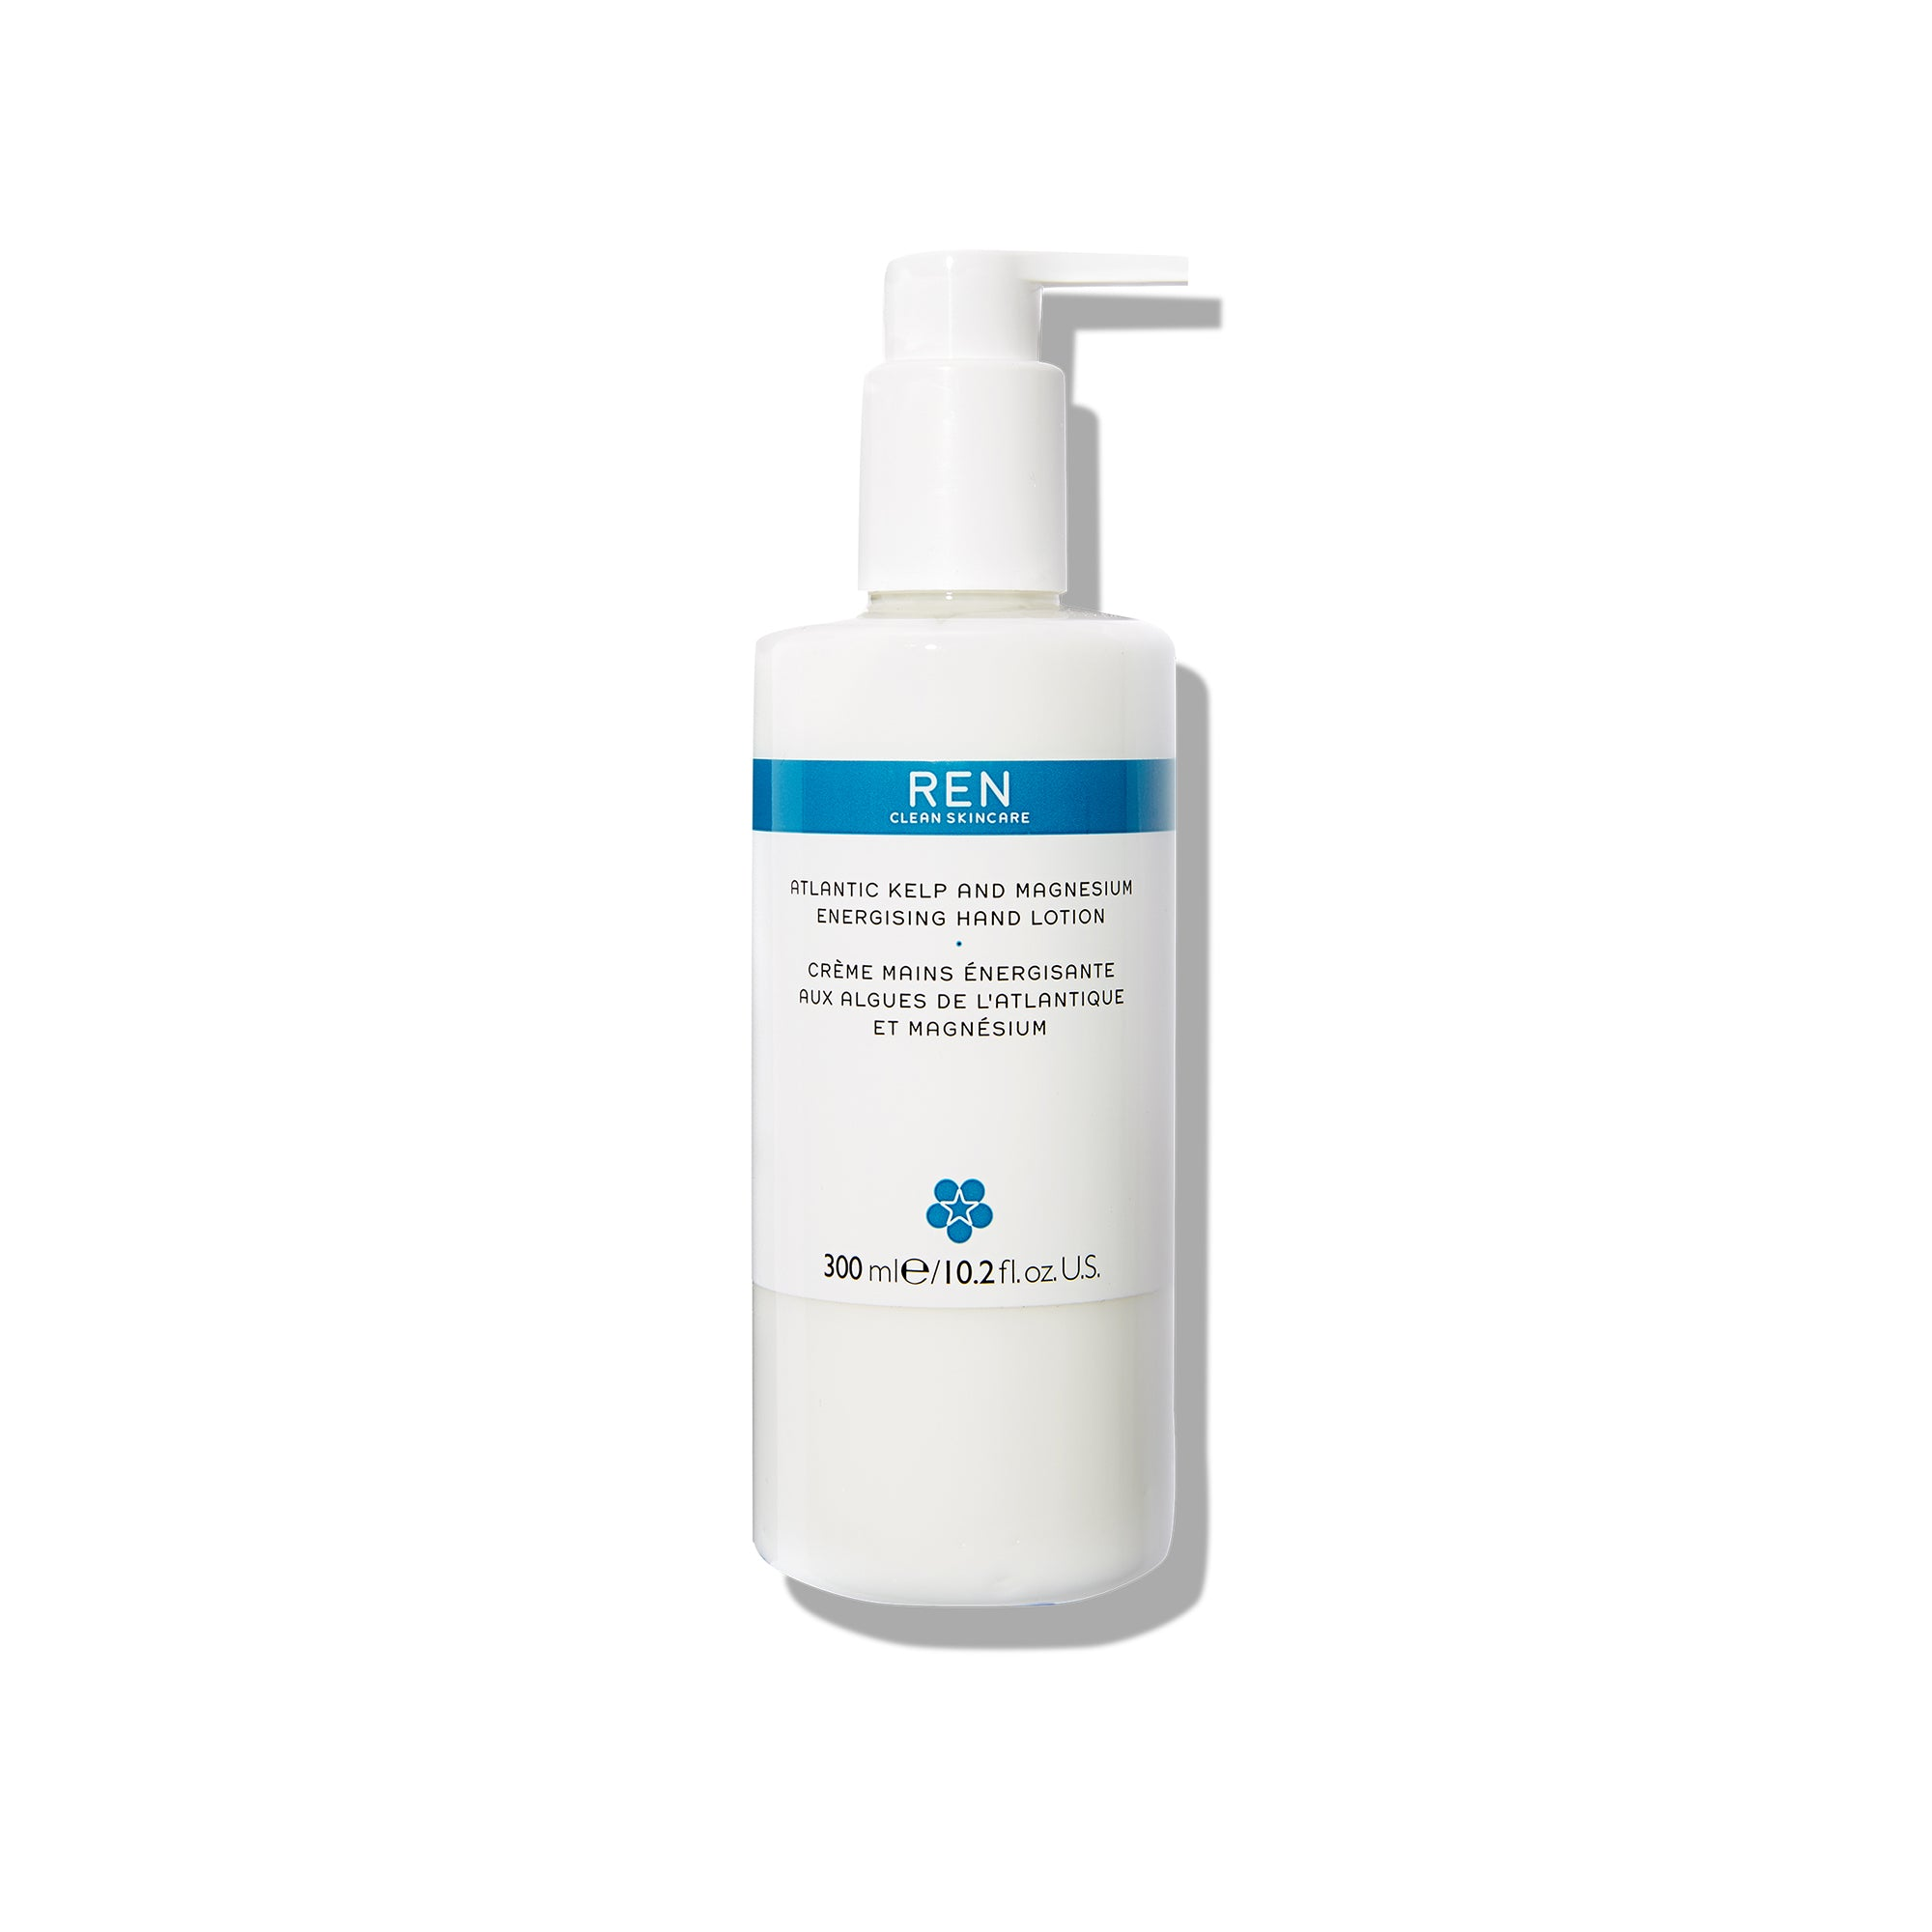 Atlantic Kelp And Magnesium Energising Hand Lotion